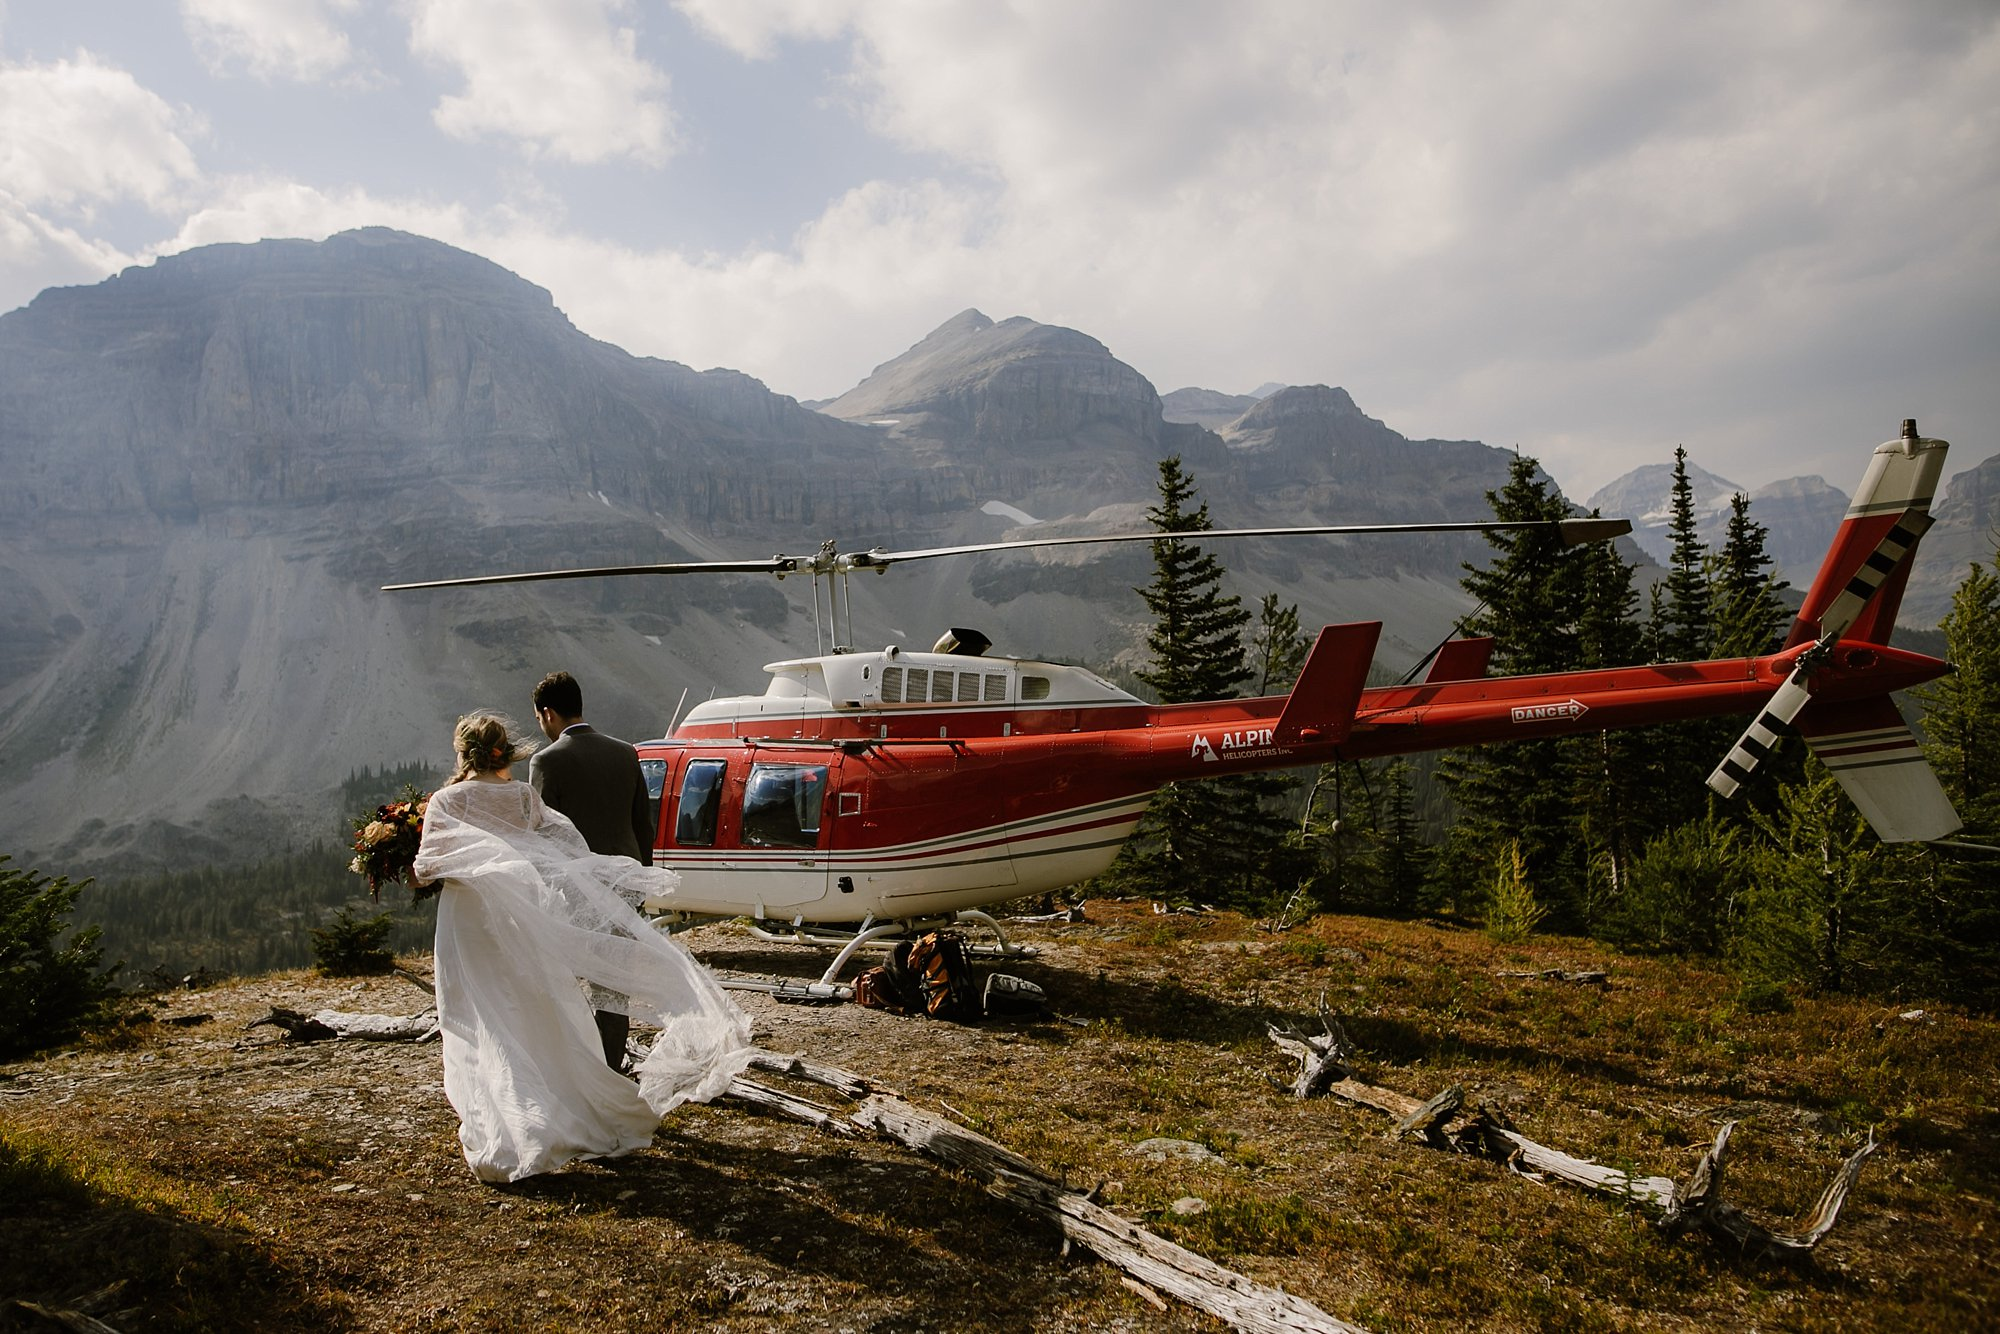 Helicopter elopement wedding in Banff National Park